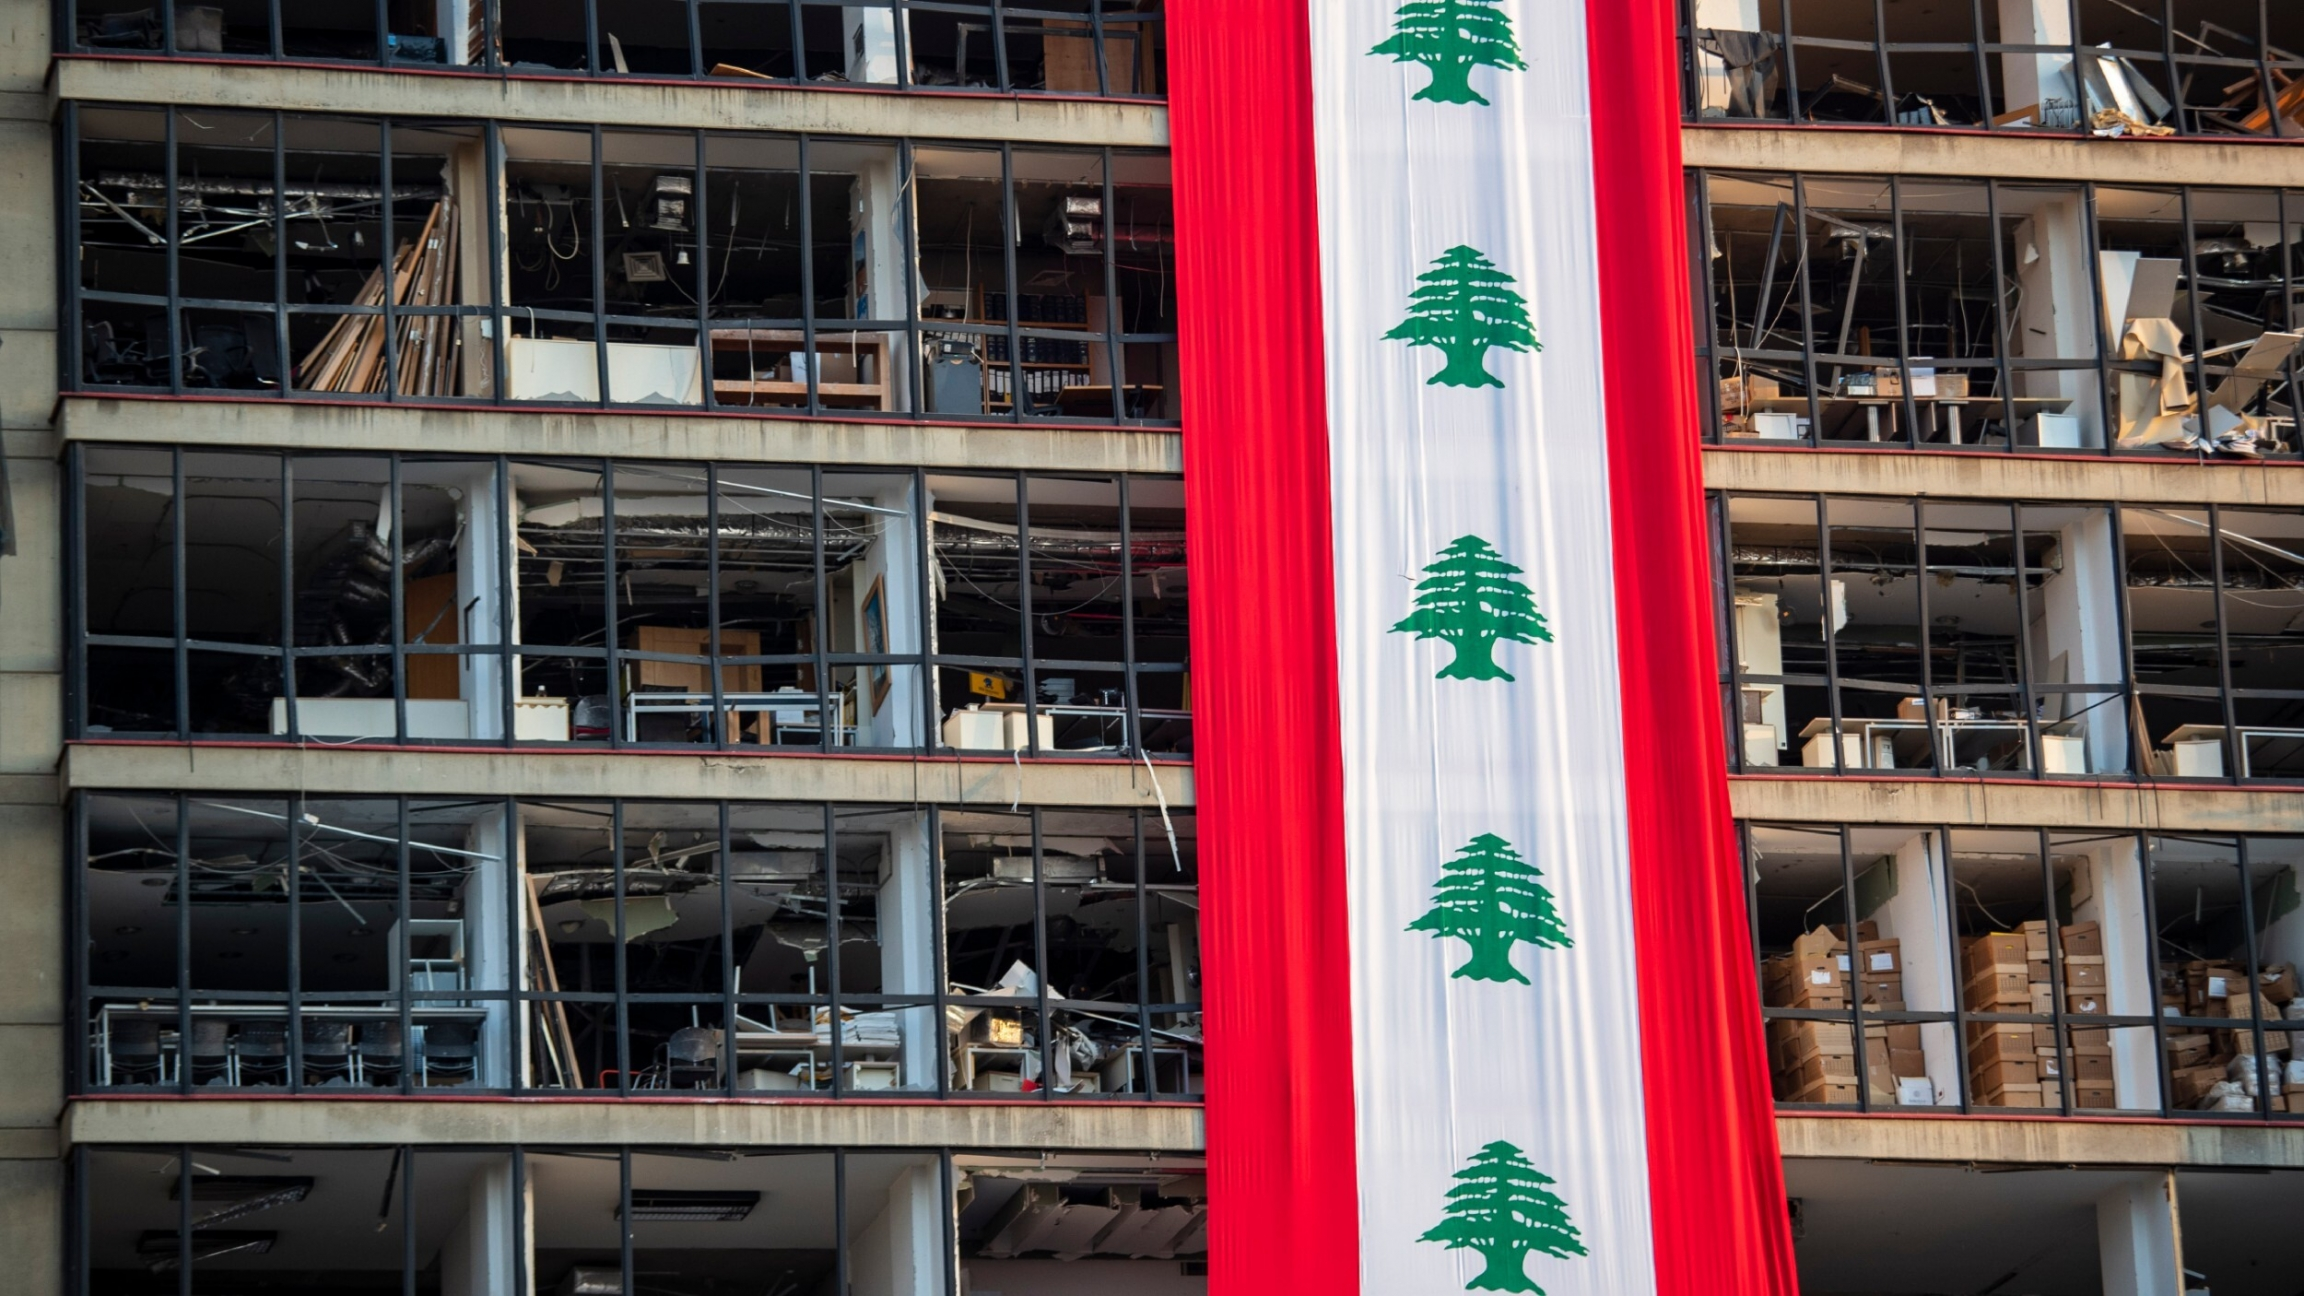 A banner with representations of the Lebanese flag hangs on a damaged building in a neighborhood near the site of the explosion